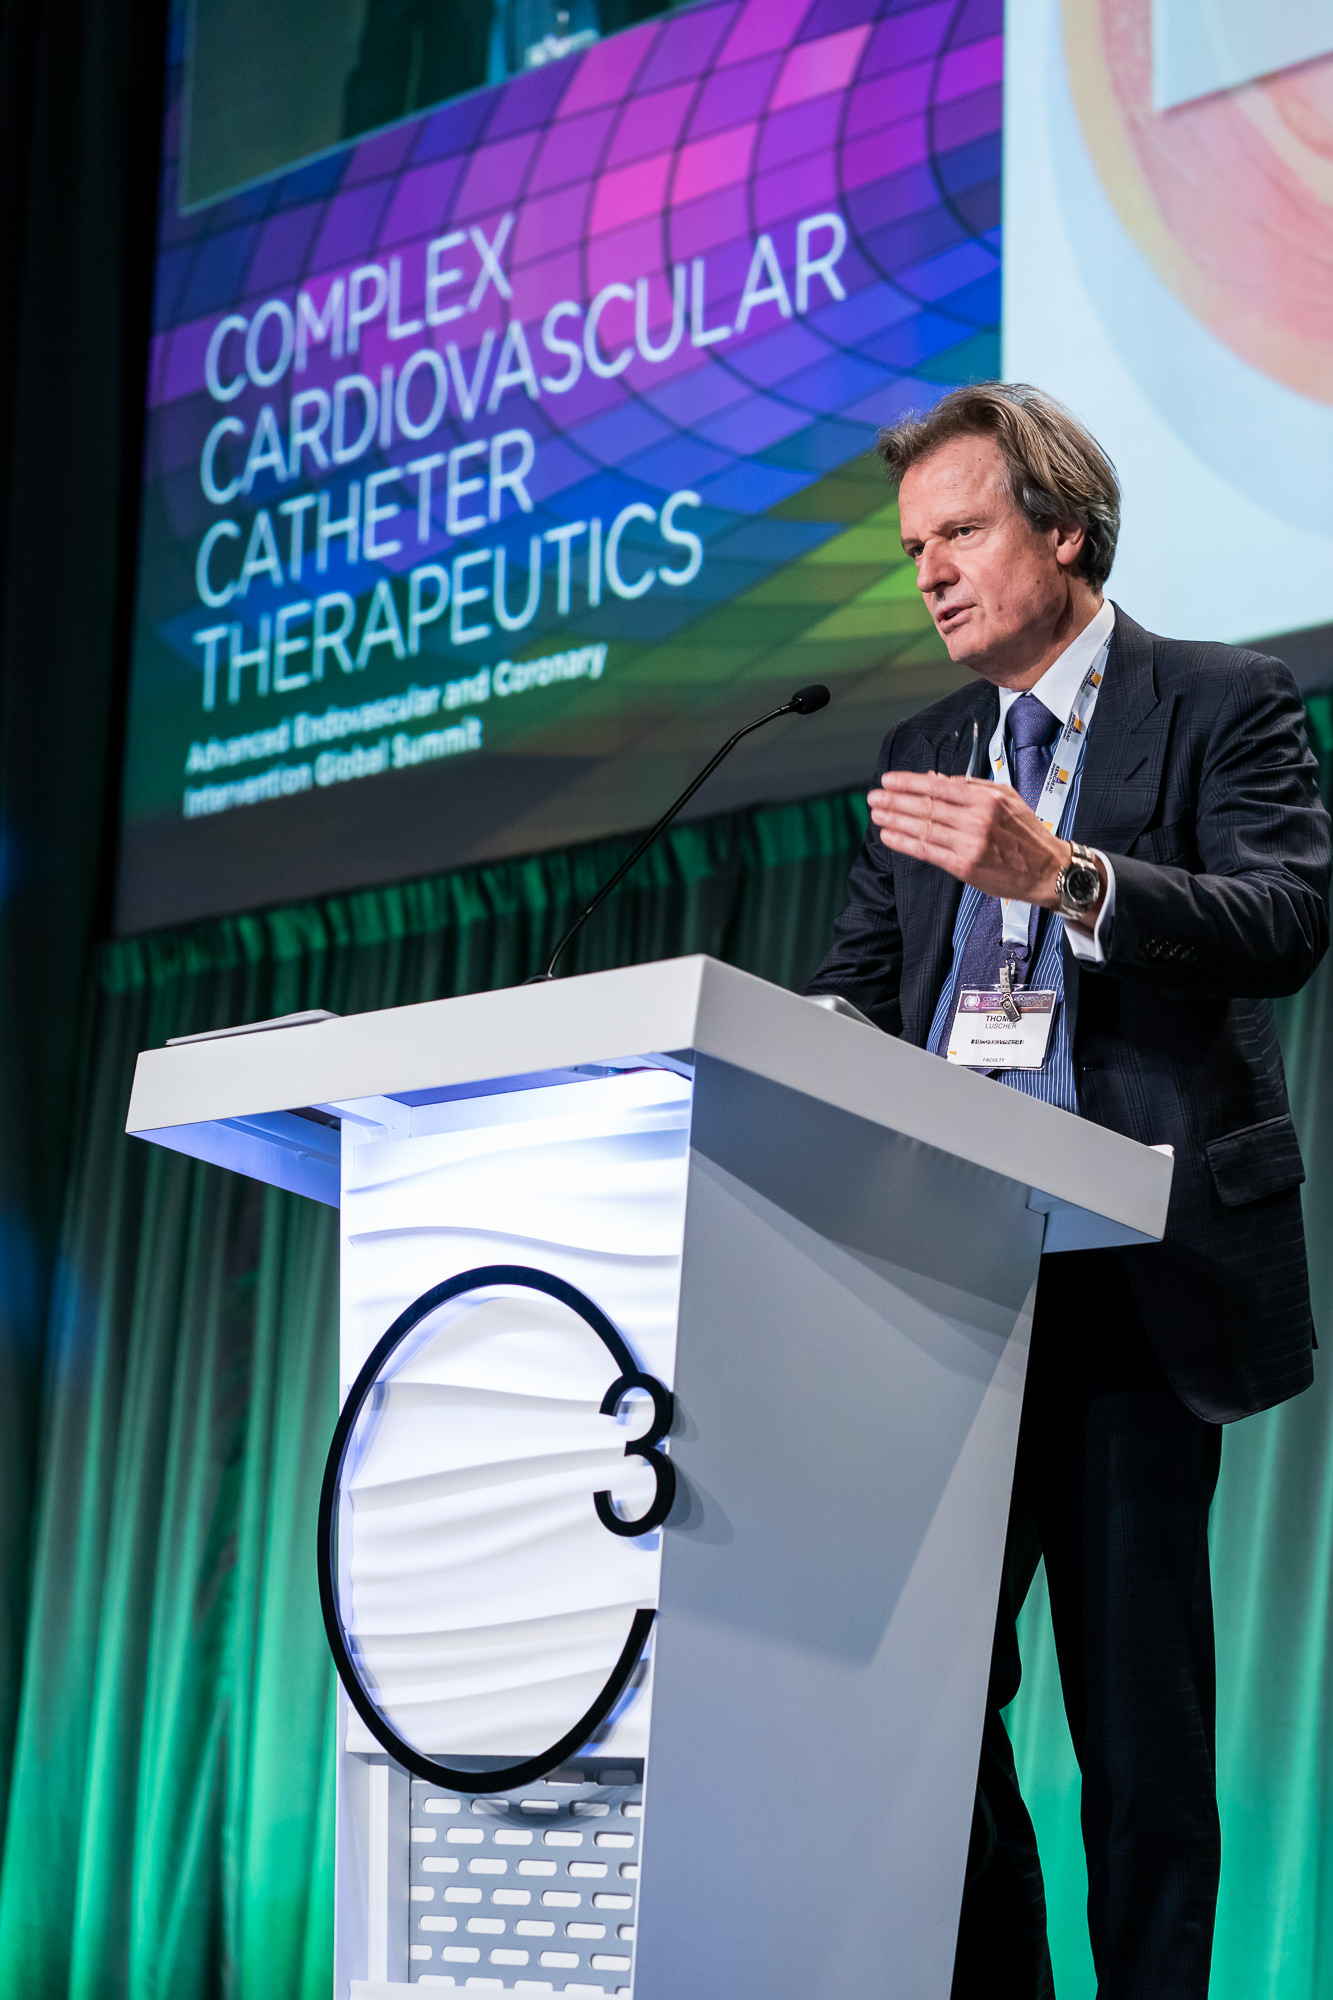 014-Christopher-Jason-Studios-complex-cardiovascular-catheter-therapeutics-c3-conference-washington-dc-orlando-florida-event-photography-physician-speaks-in-front-of-group-of-cardiologists-2.jpg